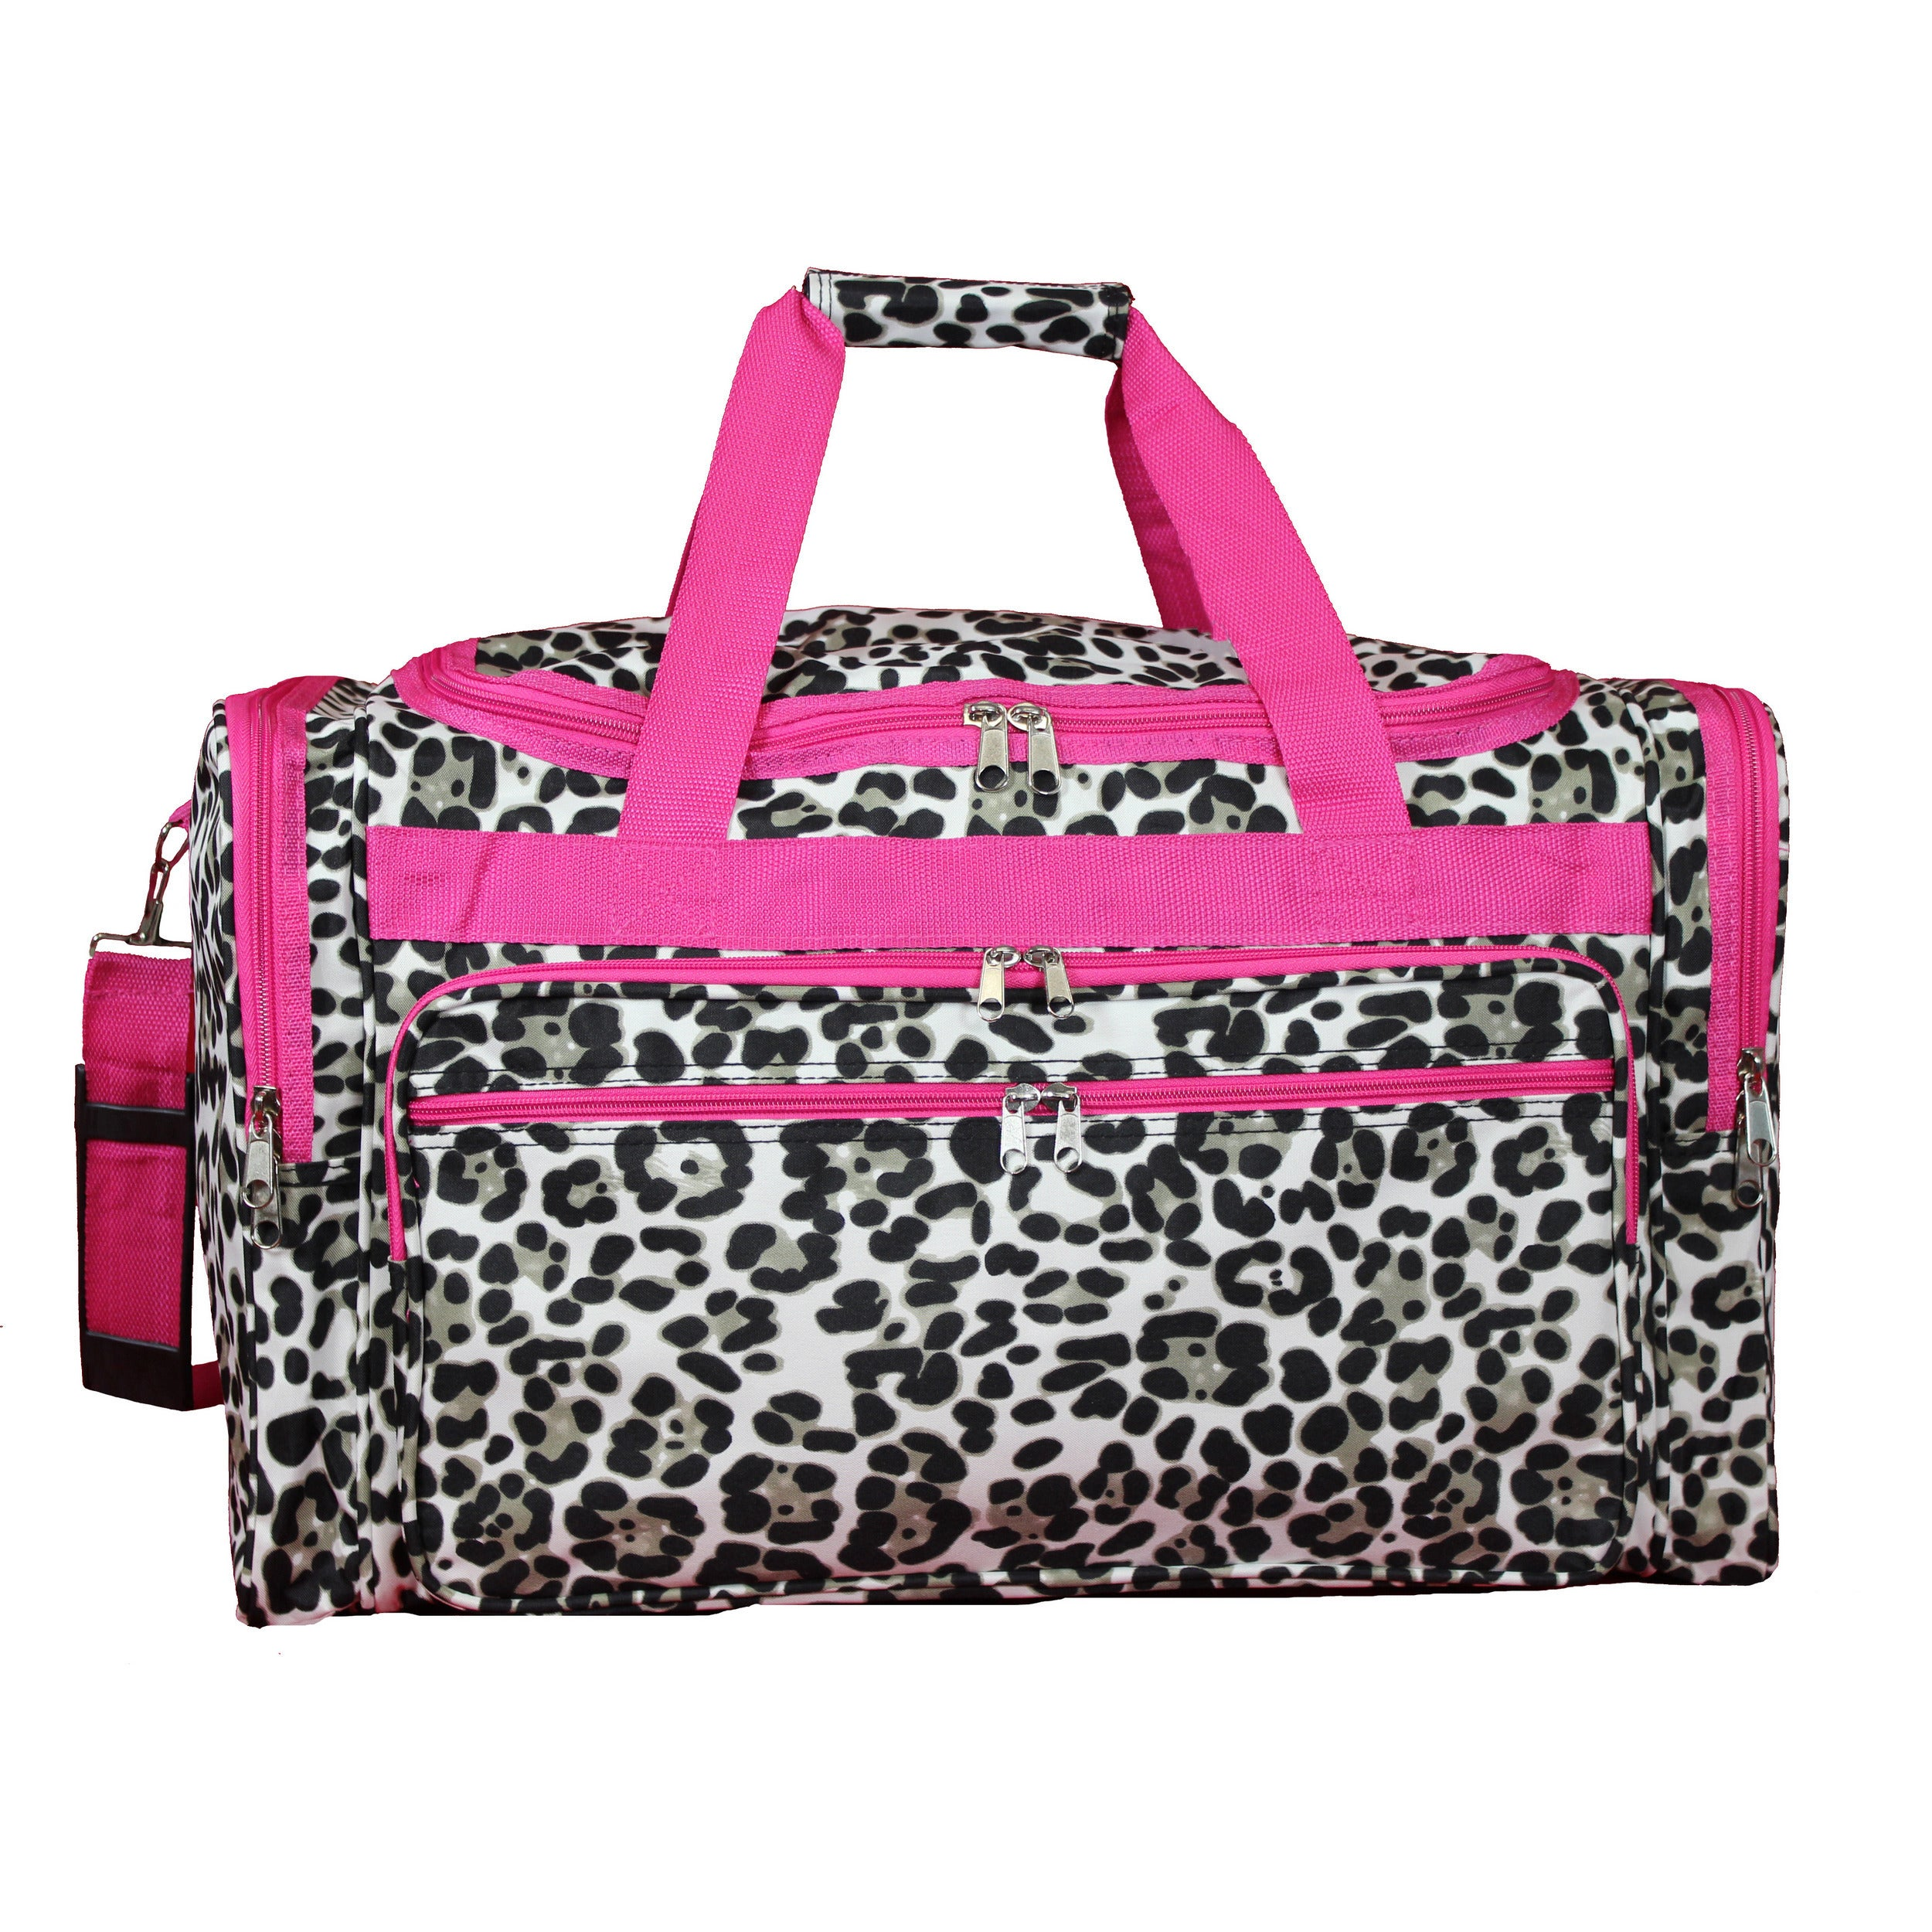 5f74fa588cc6 Shop World Traveler Pink Trim Cheetah 22-inch Lightweight Duffle Bag - Free  Shipping On Orders Over  45 - Overstock - 19429717